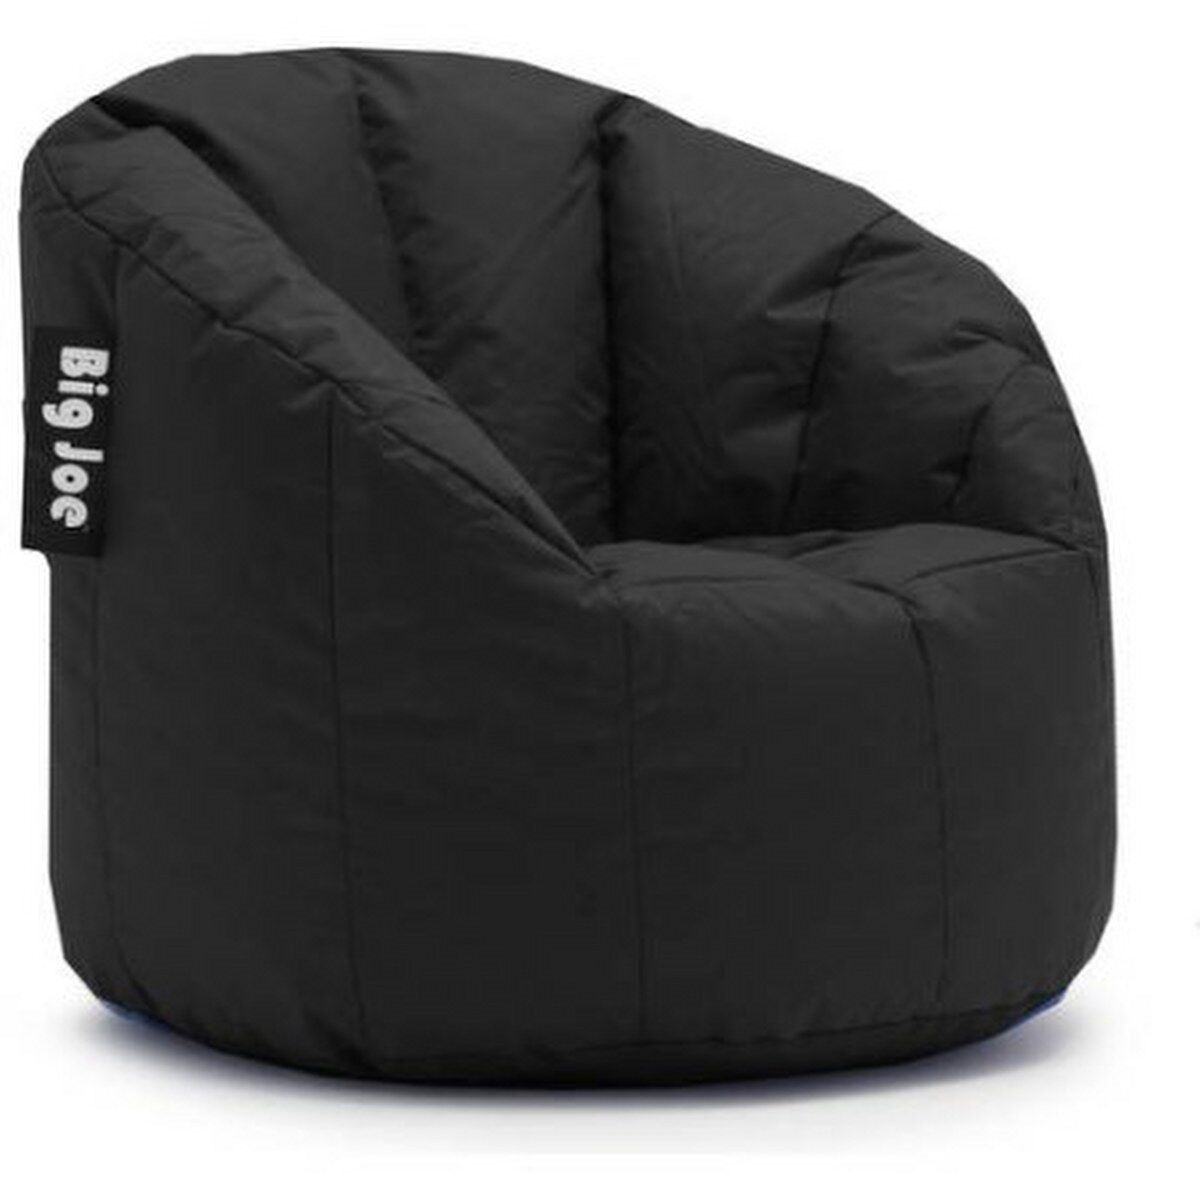 Comfort Research Big Joe MILANO Bean Bag Chair Stretch Limo Black